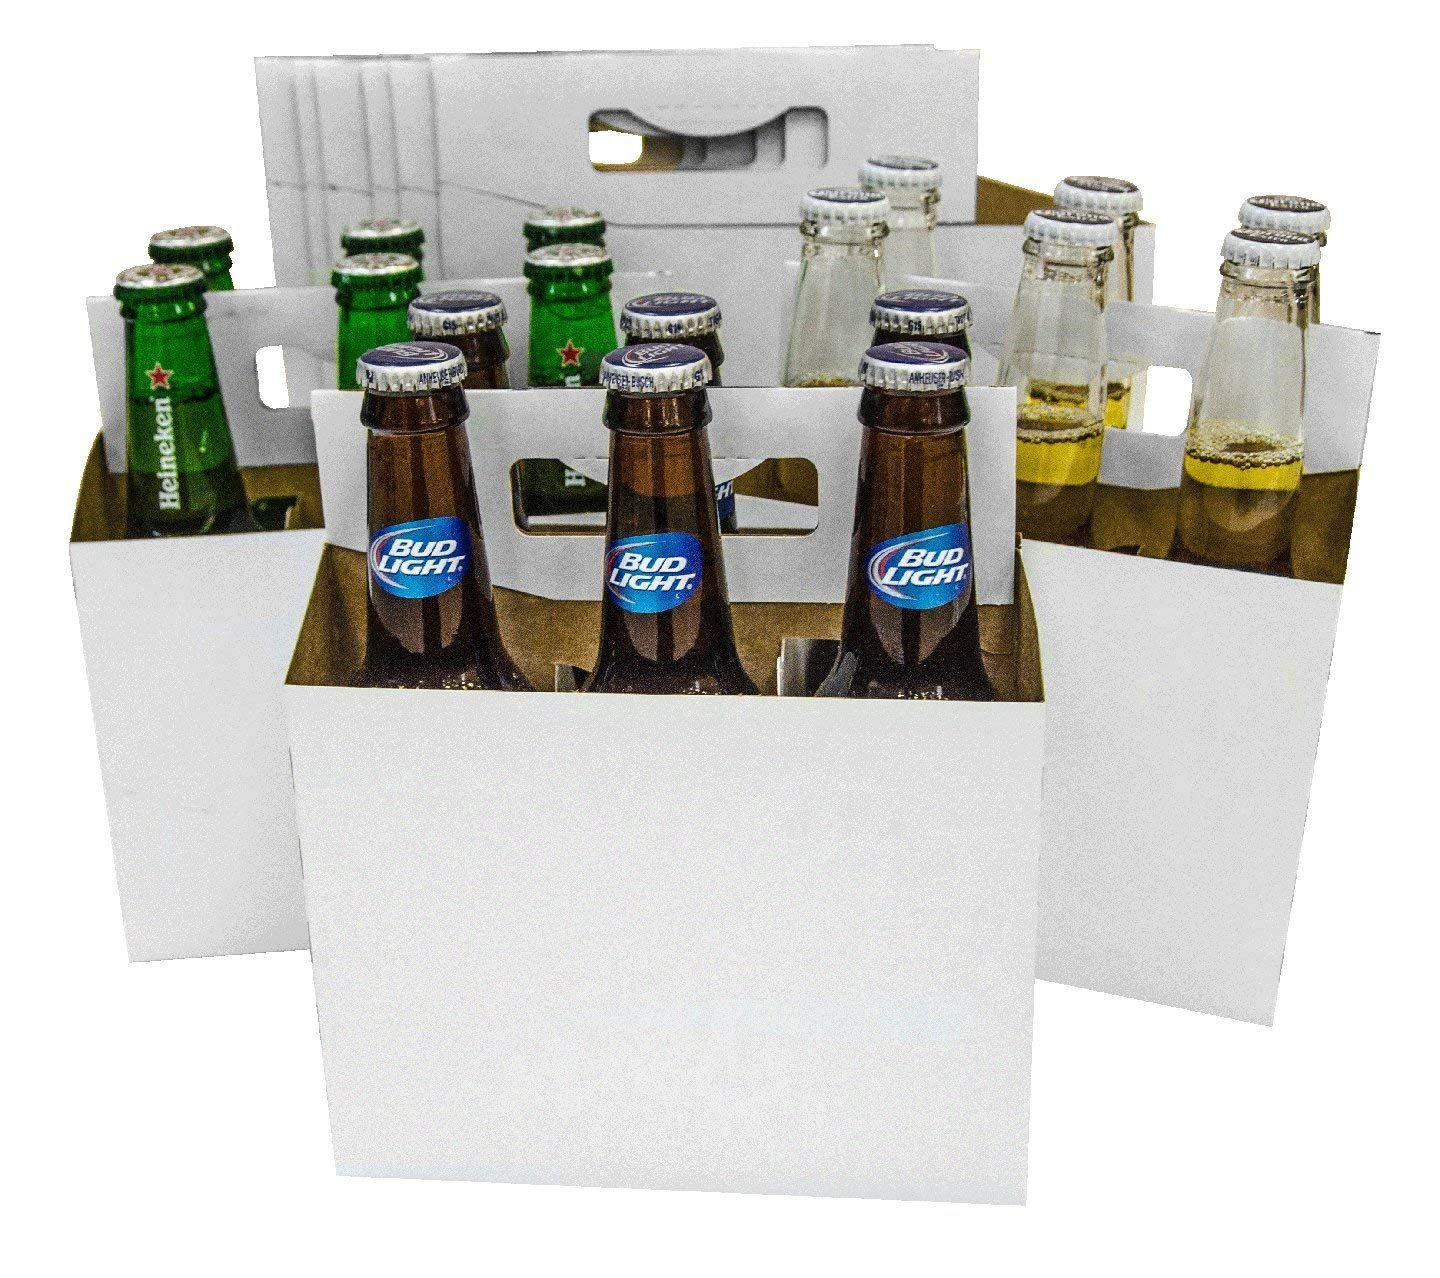 Brown Kraft 150 4 Pack Beer Bottle Holder that fits 12-16oz bottles Sturdy Cardboard Holds six bottles